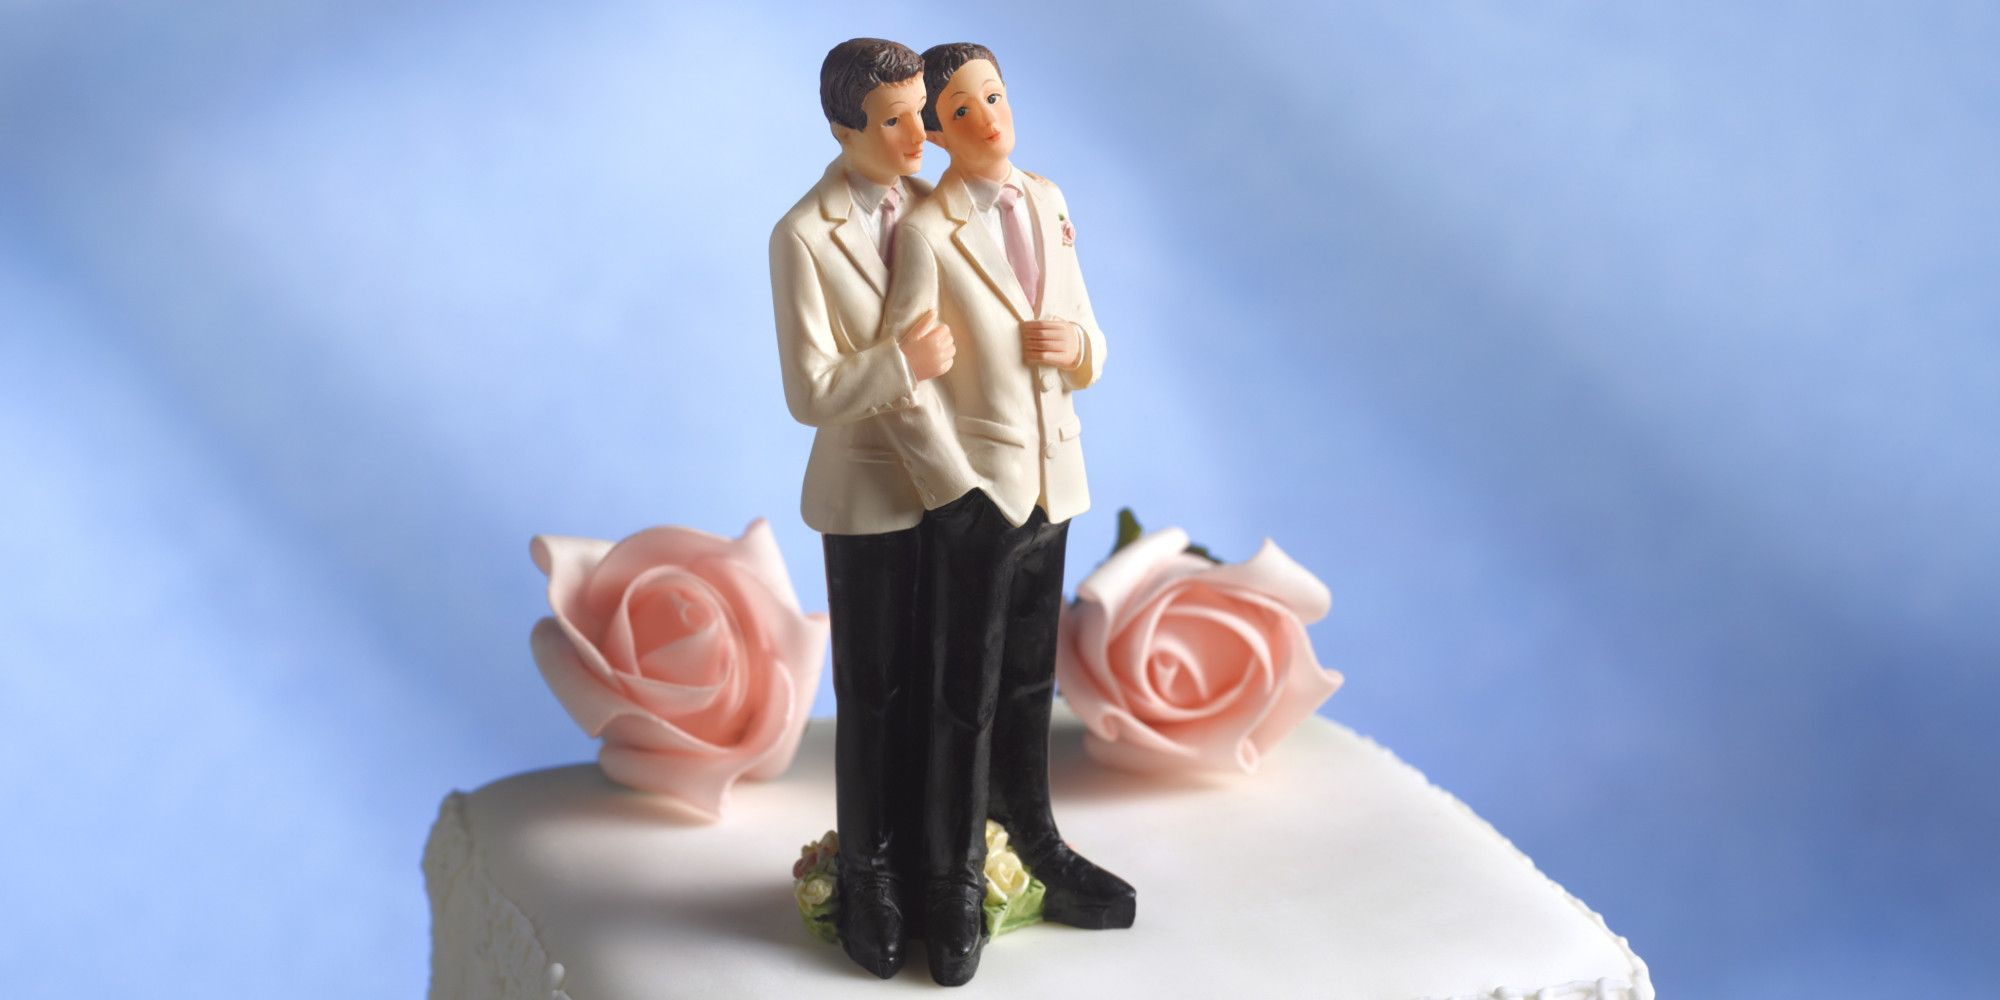 Wedding cake for a gay wedding